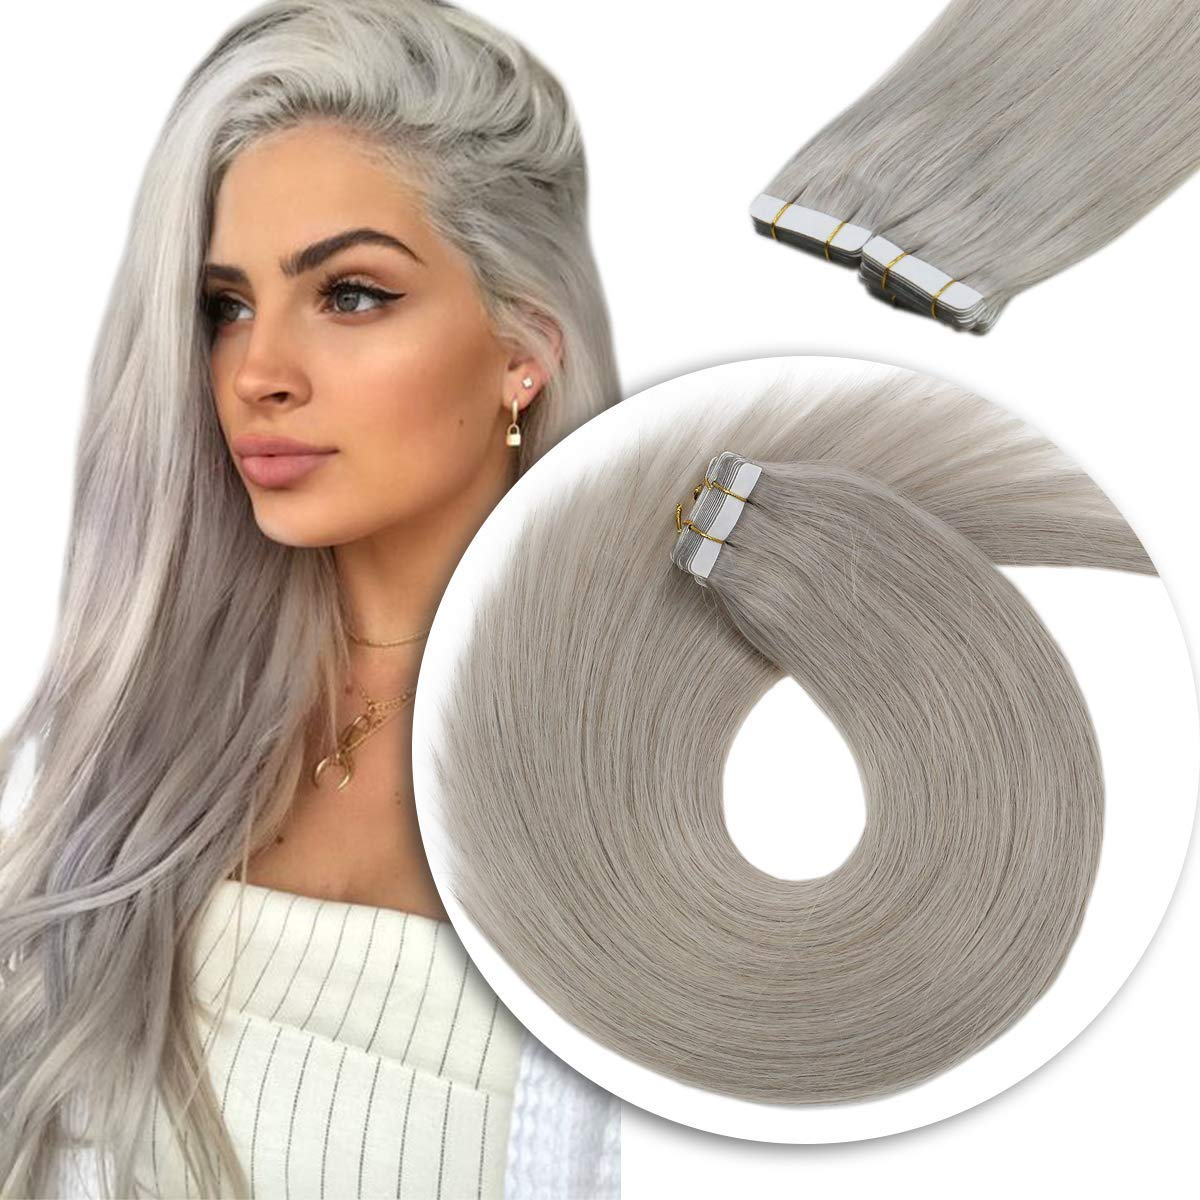 10 - 30 Inch Tape In Remy Human Hair Extensions Grey 20 Pcs 7